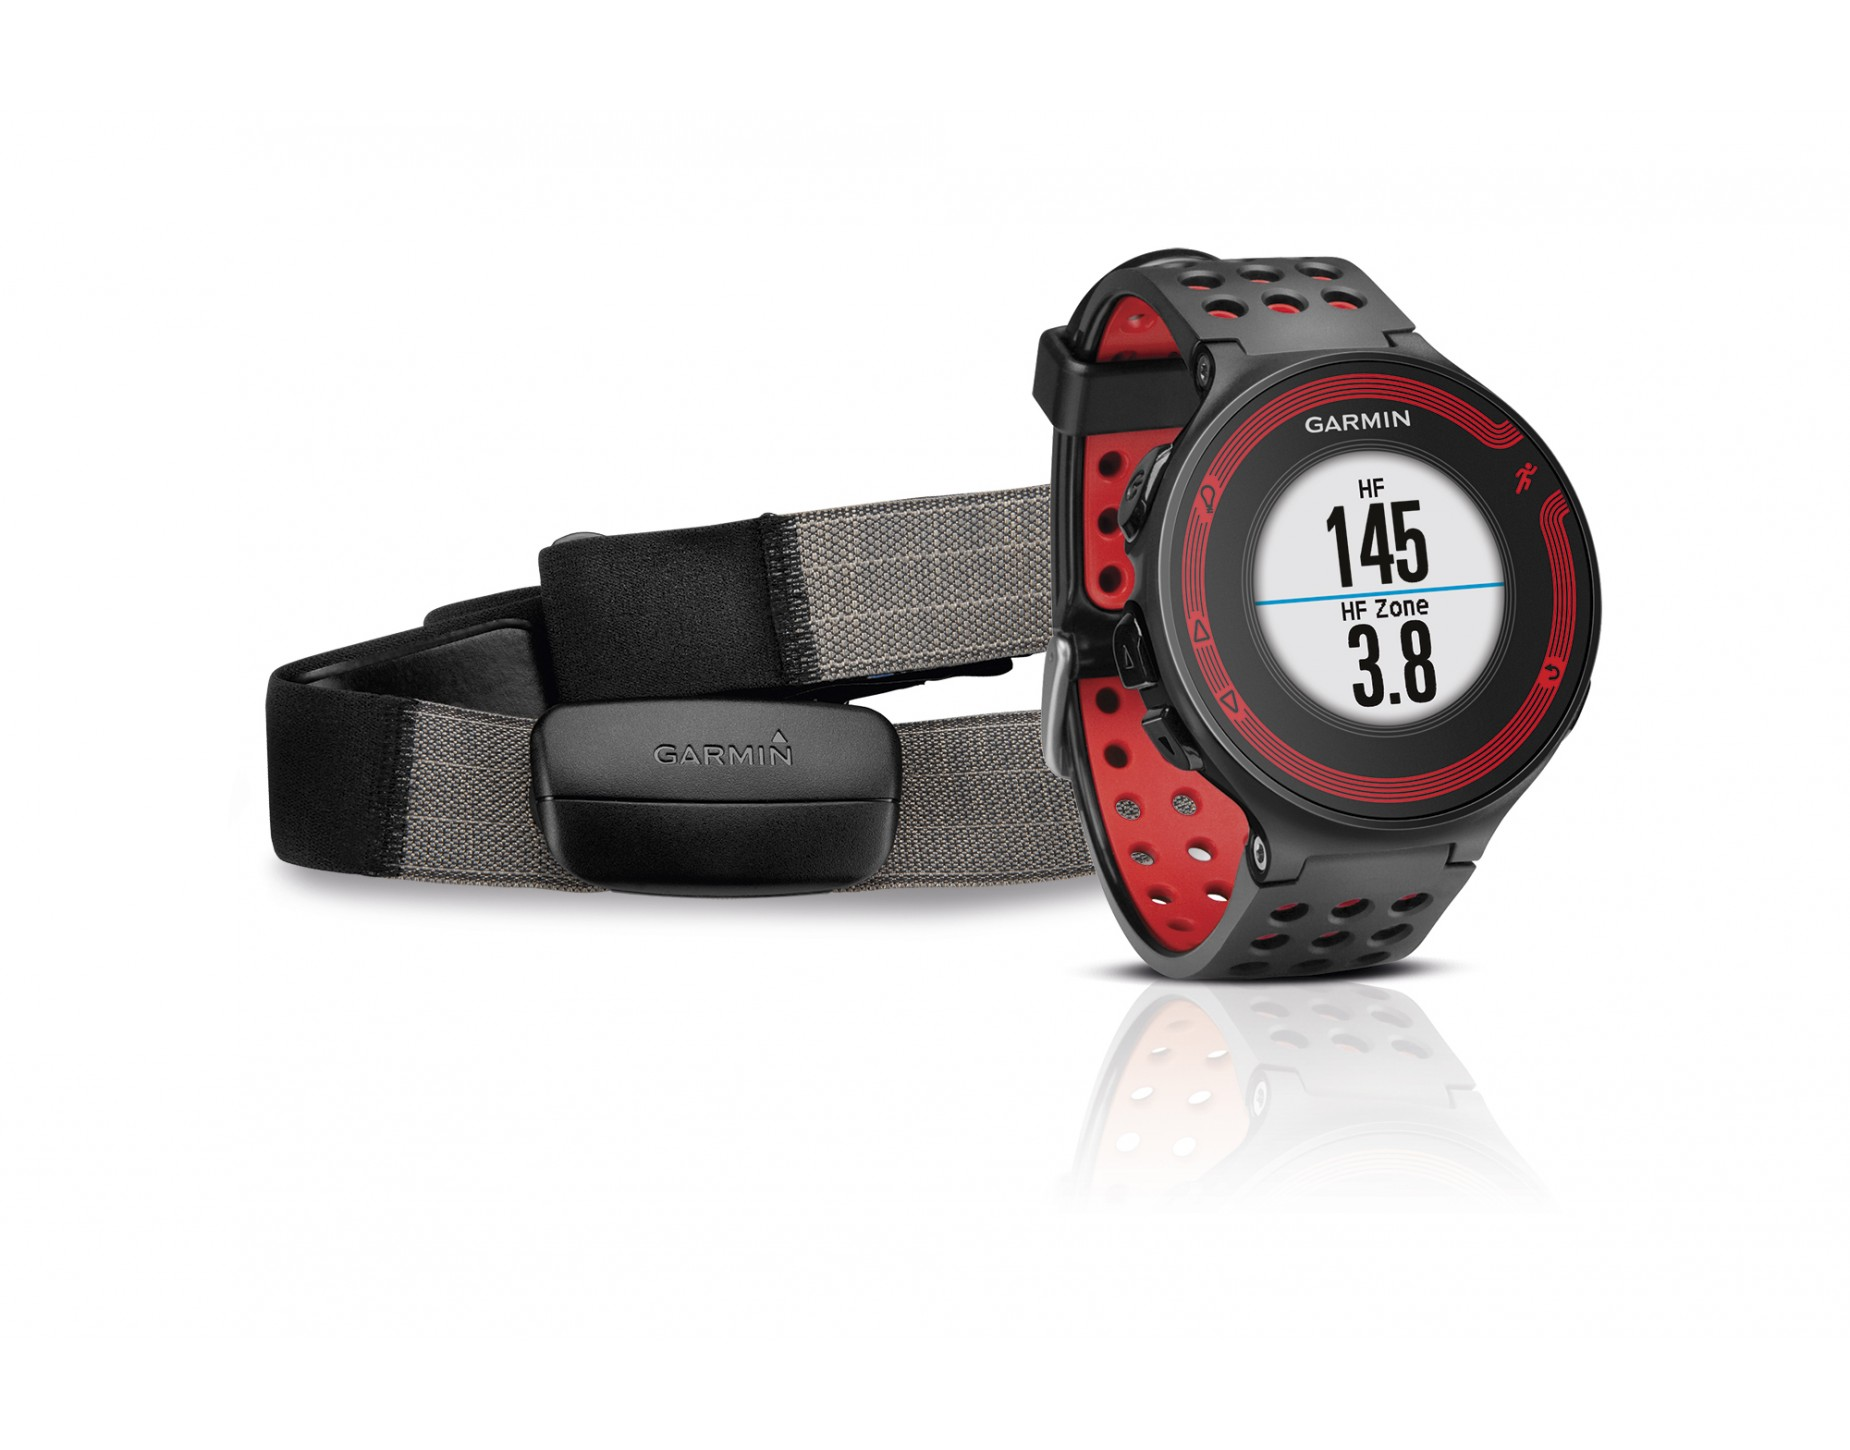 Garmin Forerunner 220 Gps Watch With Heart Rate Chest Strap